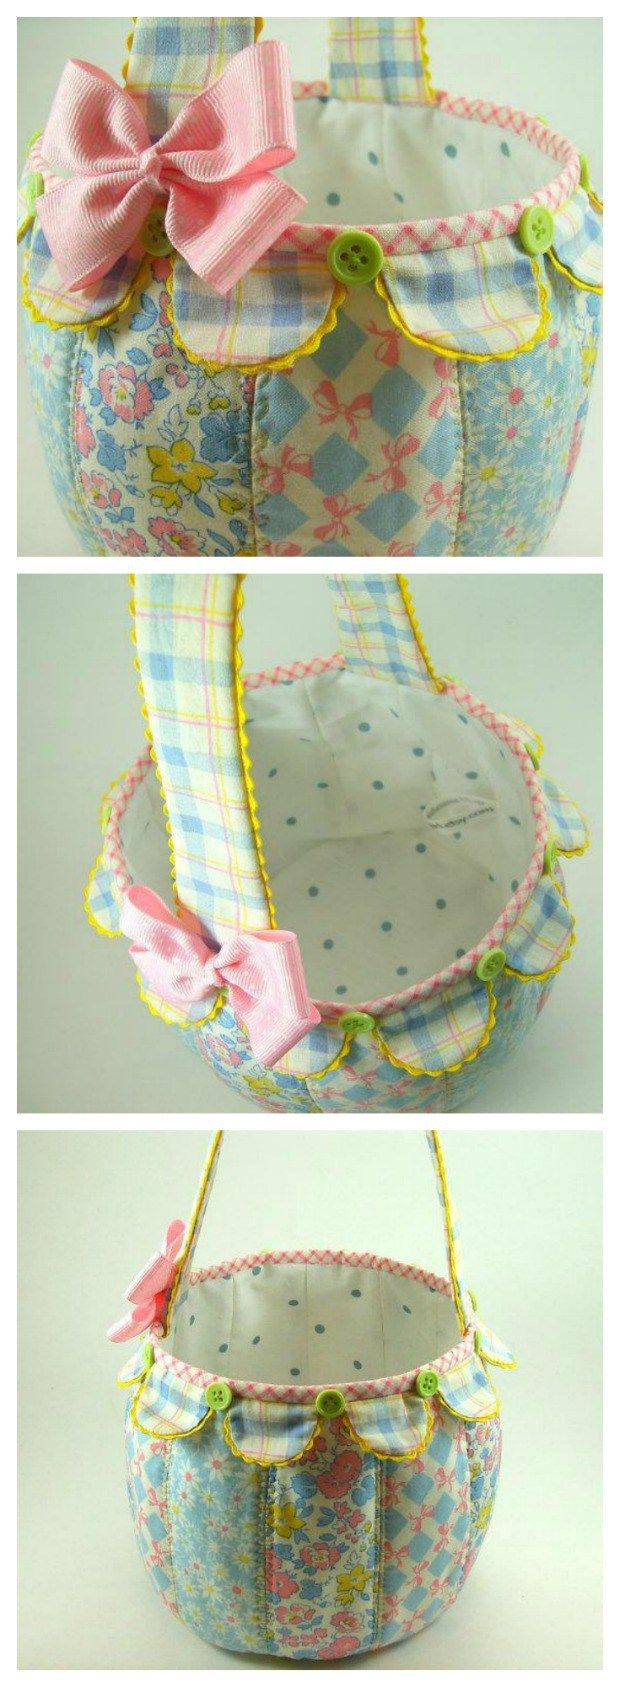 Instructions for how to make this darling Easter Basket. I think this would also make a great new mom basket too, filled with baby accessories. Can't wait to make one.